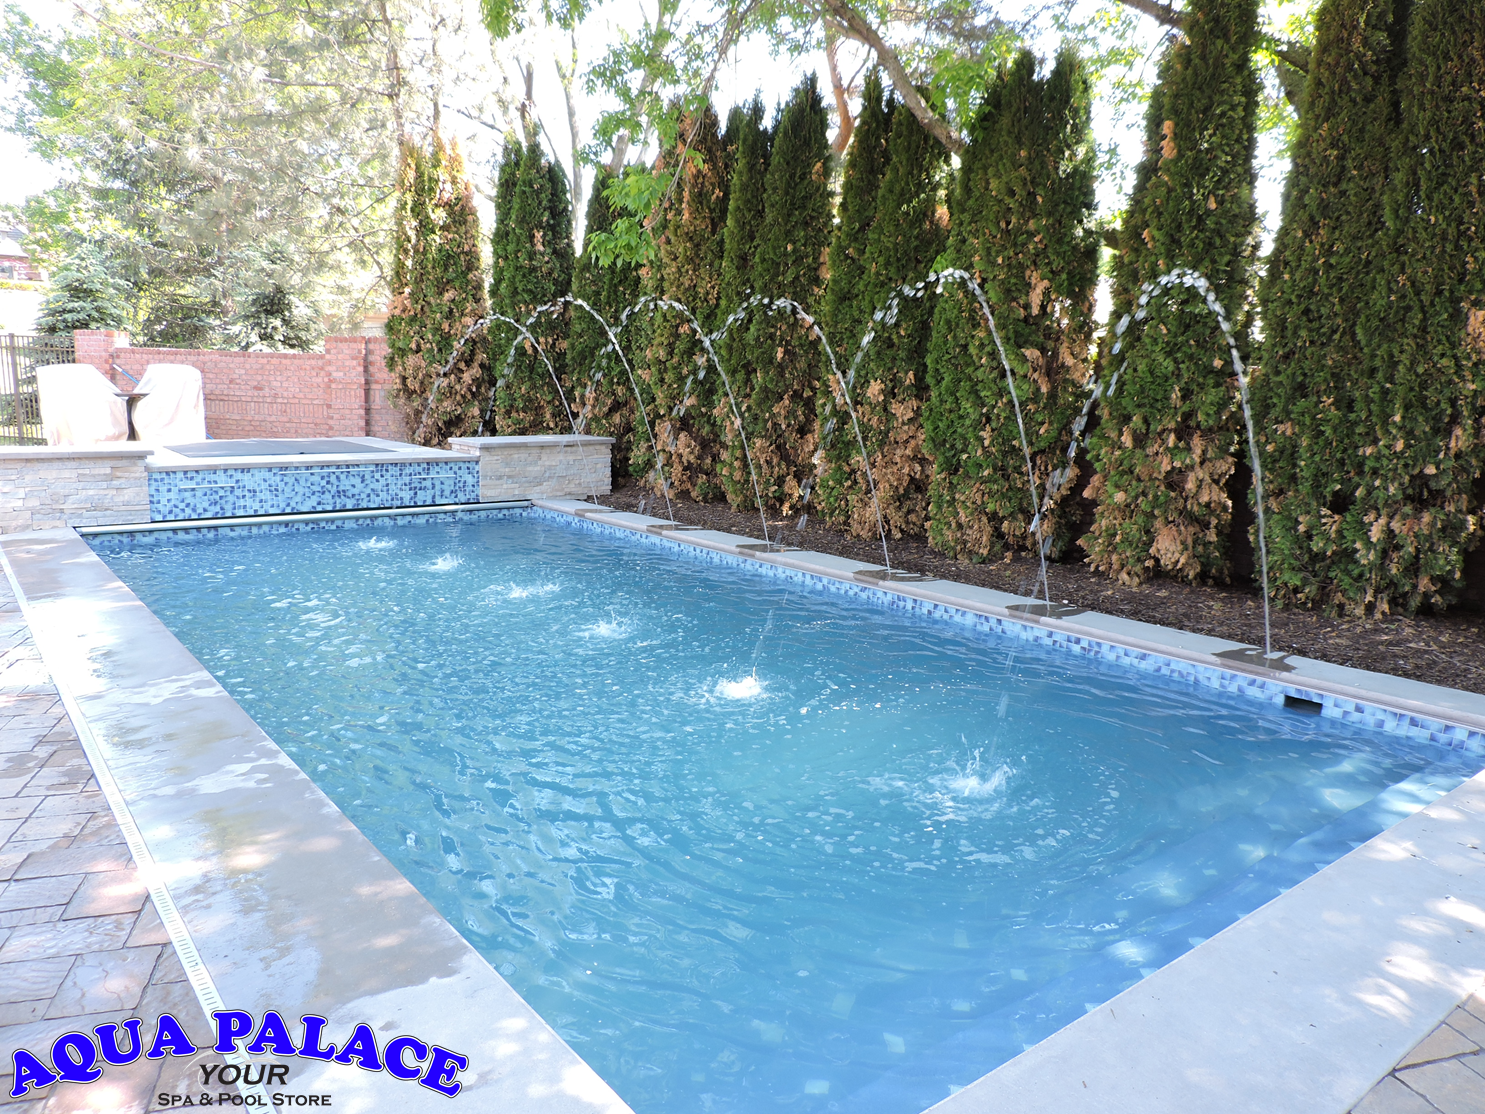 Fiberglass Inground Pool With Custom Water Features Tile And Auto Cover Enjoy The Hot Tub While Overlooki Pool Custom Water Feature Inground Fiberglass Pools